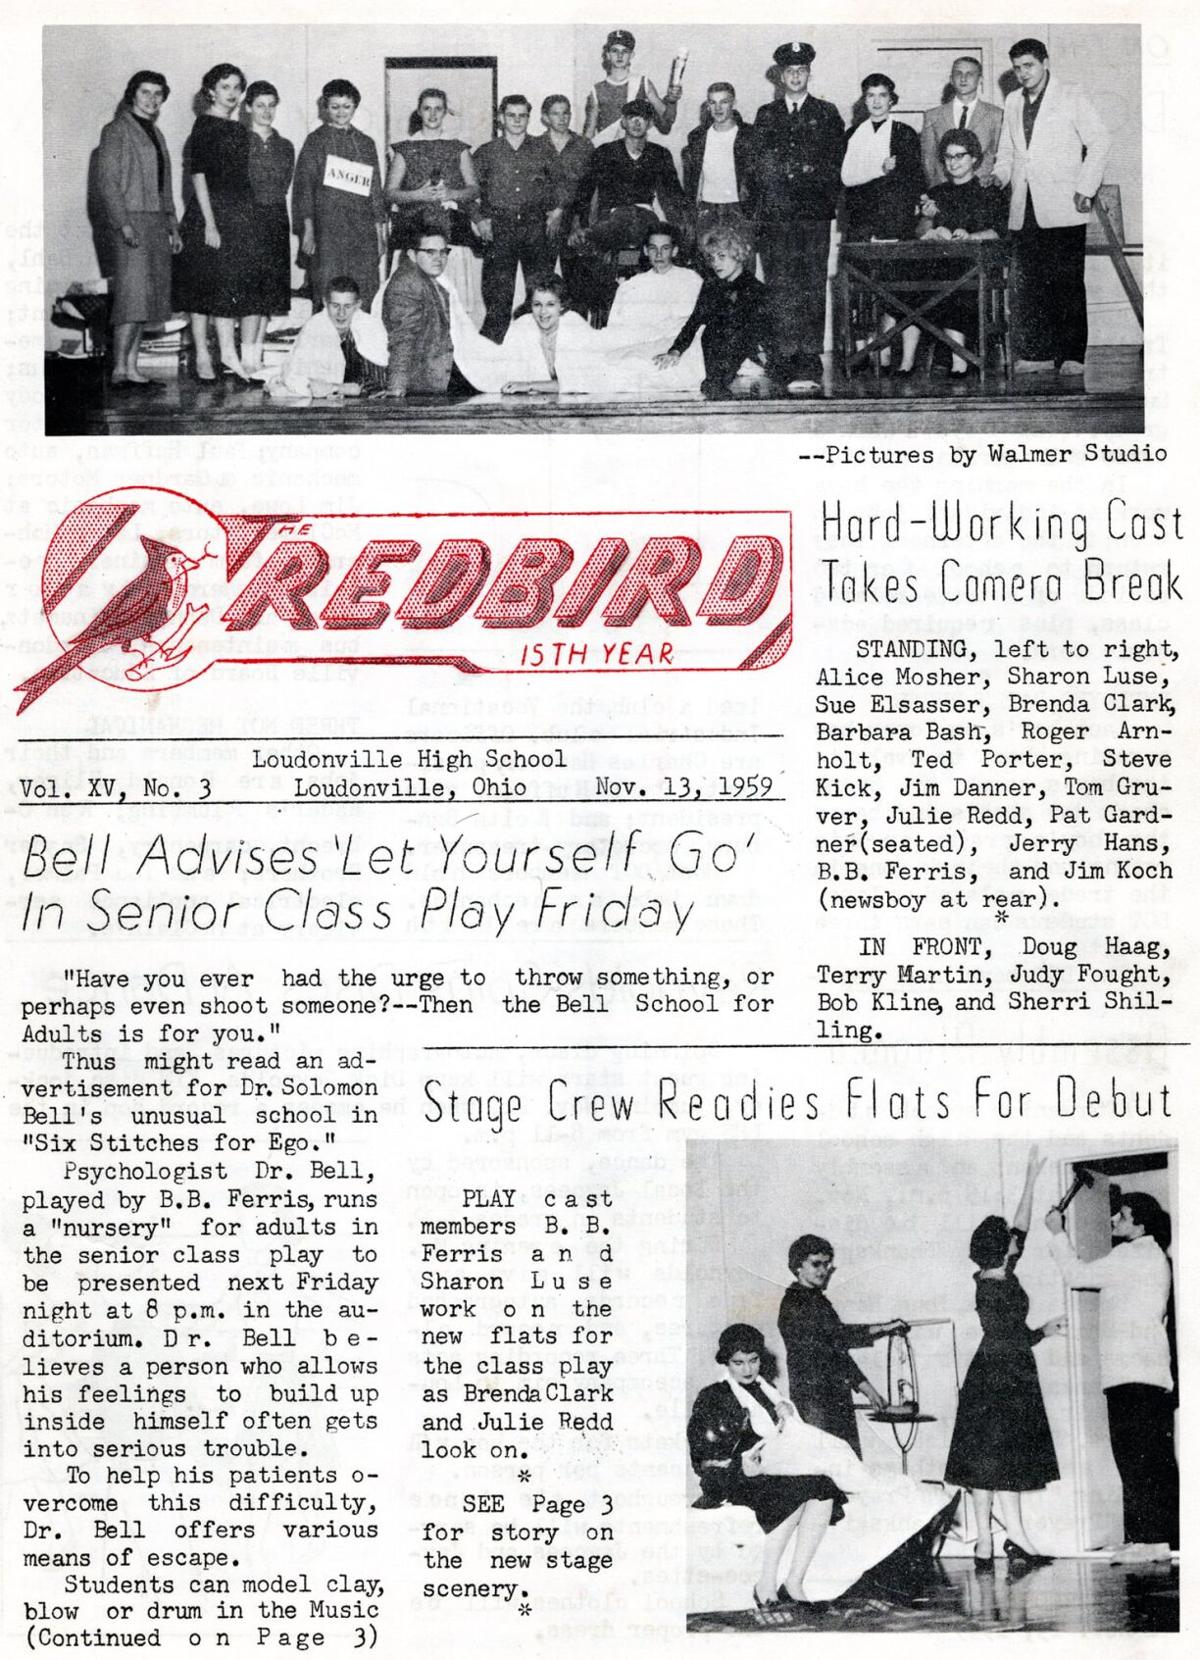 Early edition of Redbird chatter